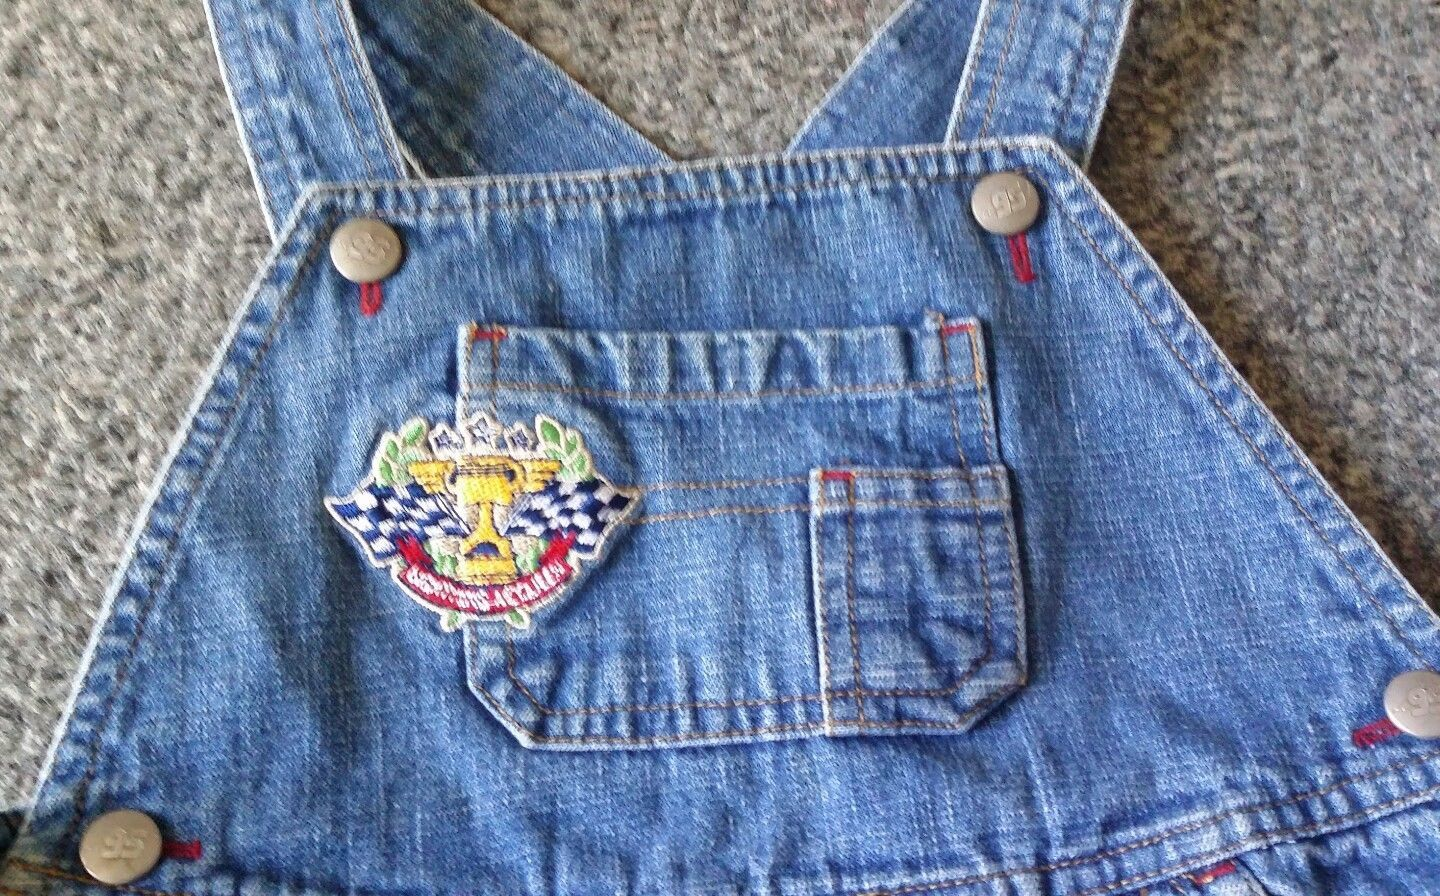 VTG Disney Pixar Cars 95 Lightening McQueen Denim Bibs Shorts 5T Overalls HTF image 5